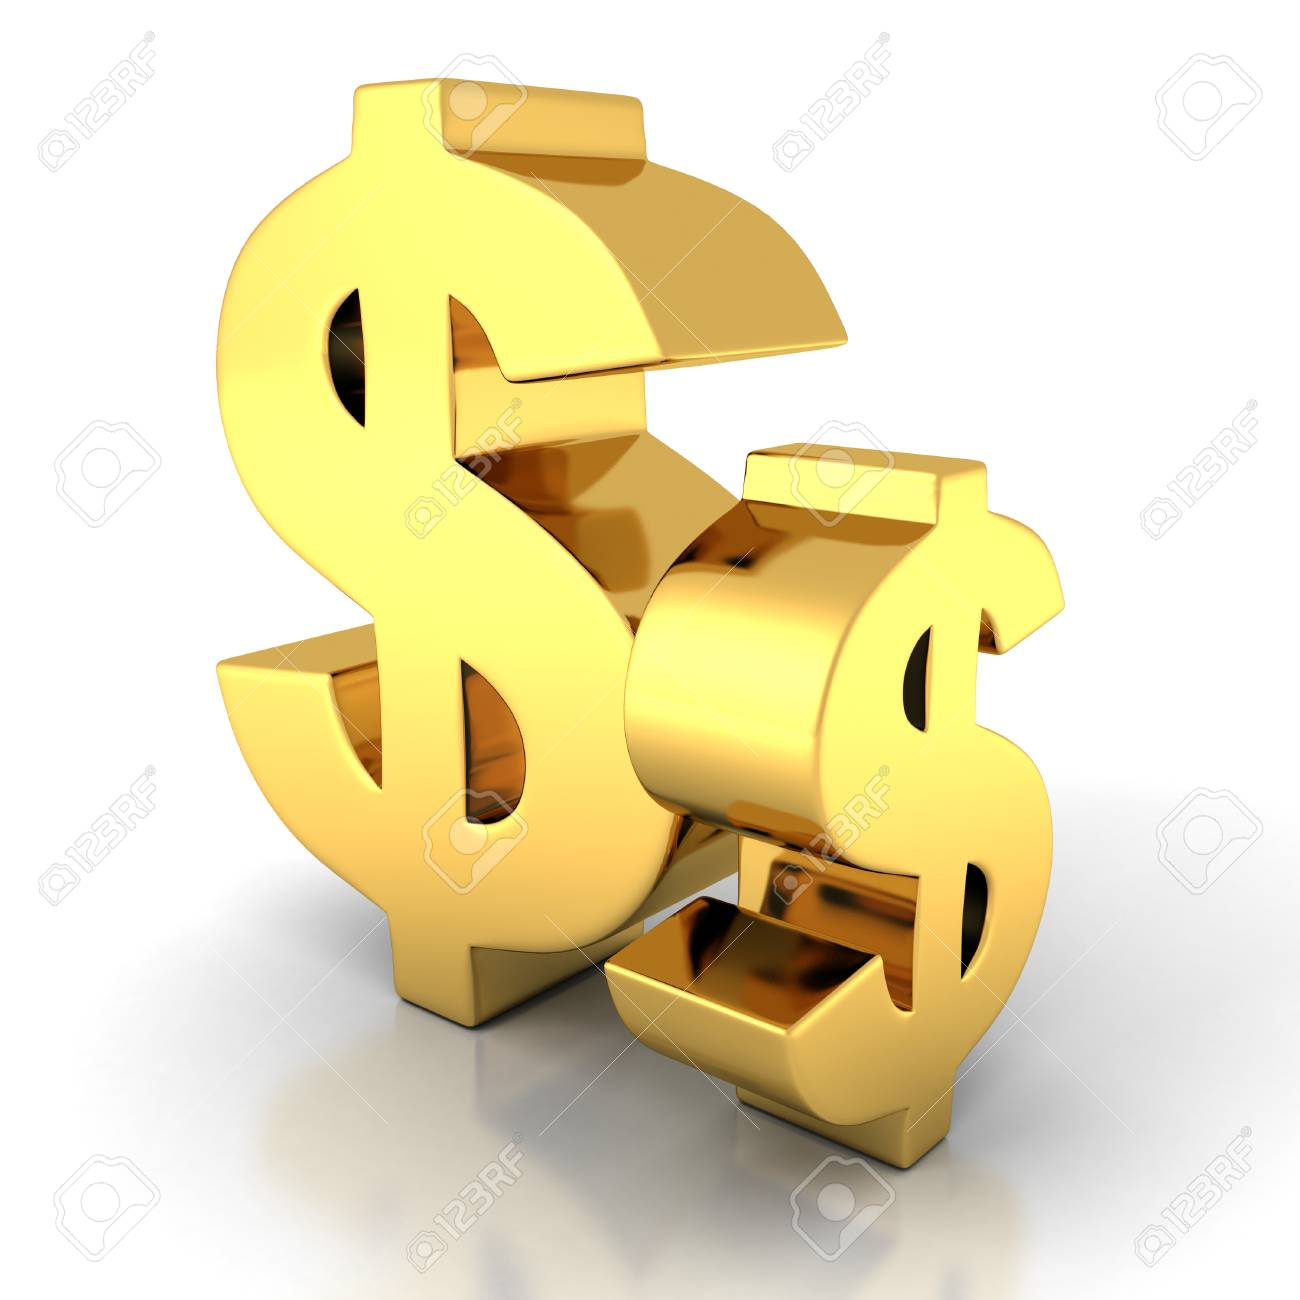 Two Golden Dollar Currency Symbols On White Background 3d Render